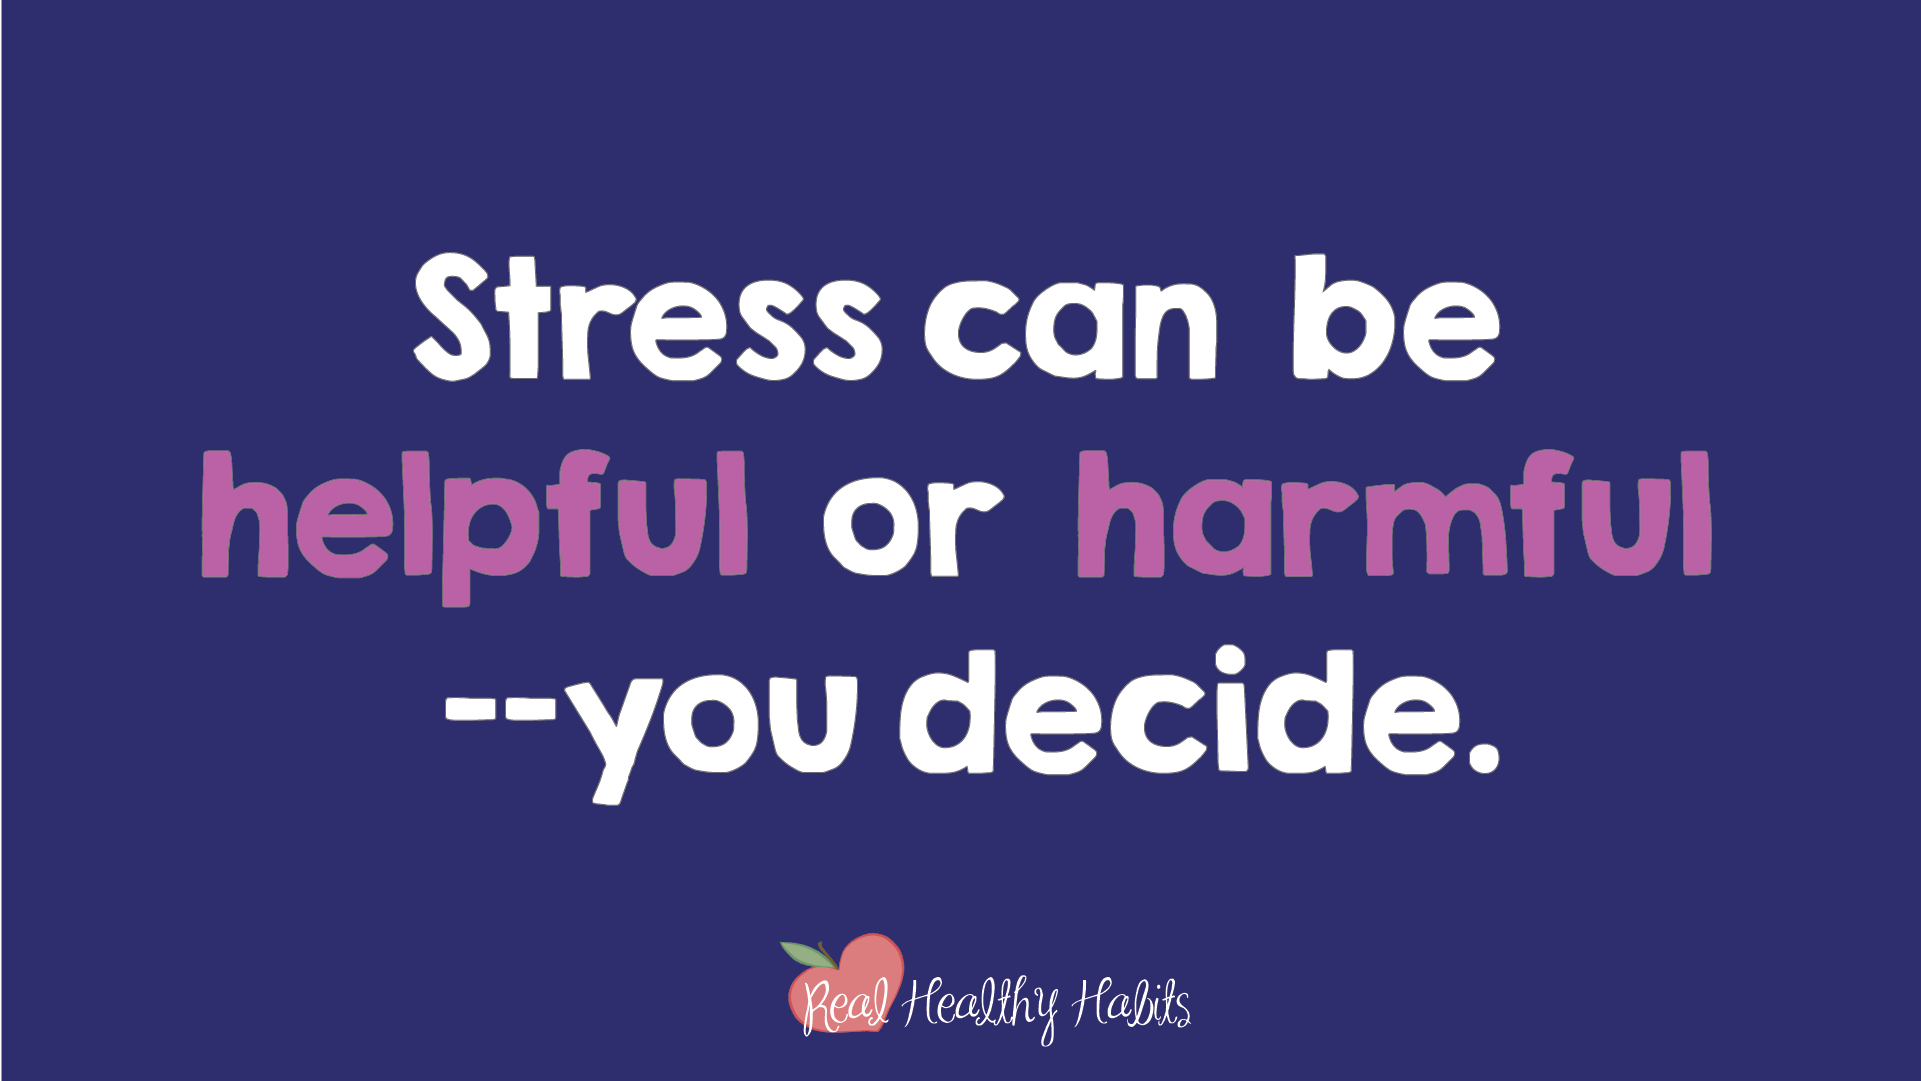 Stress can be helpful or harmful—you choose which one. People who believe stress is helpful have healthier and happier lives. | How to Make Stress Your Superpower: Stress Paradox #2 | www.realhealthyhabits.com